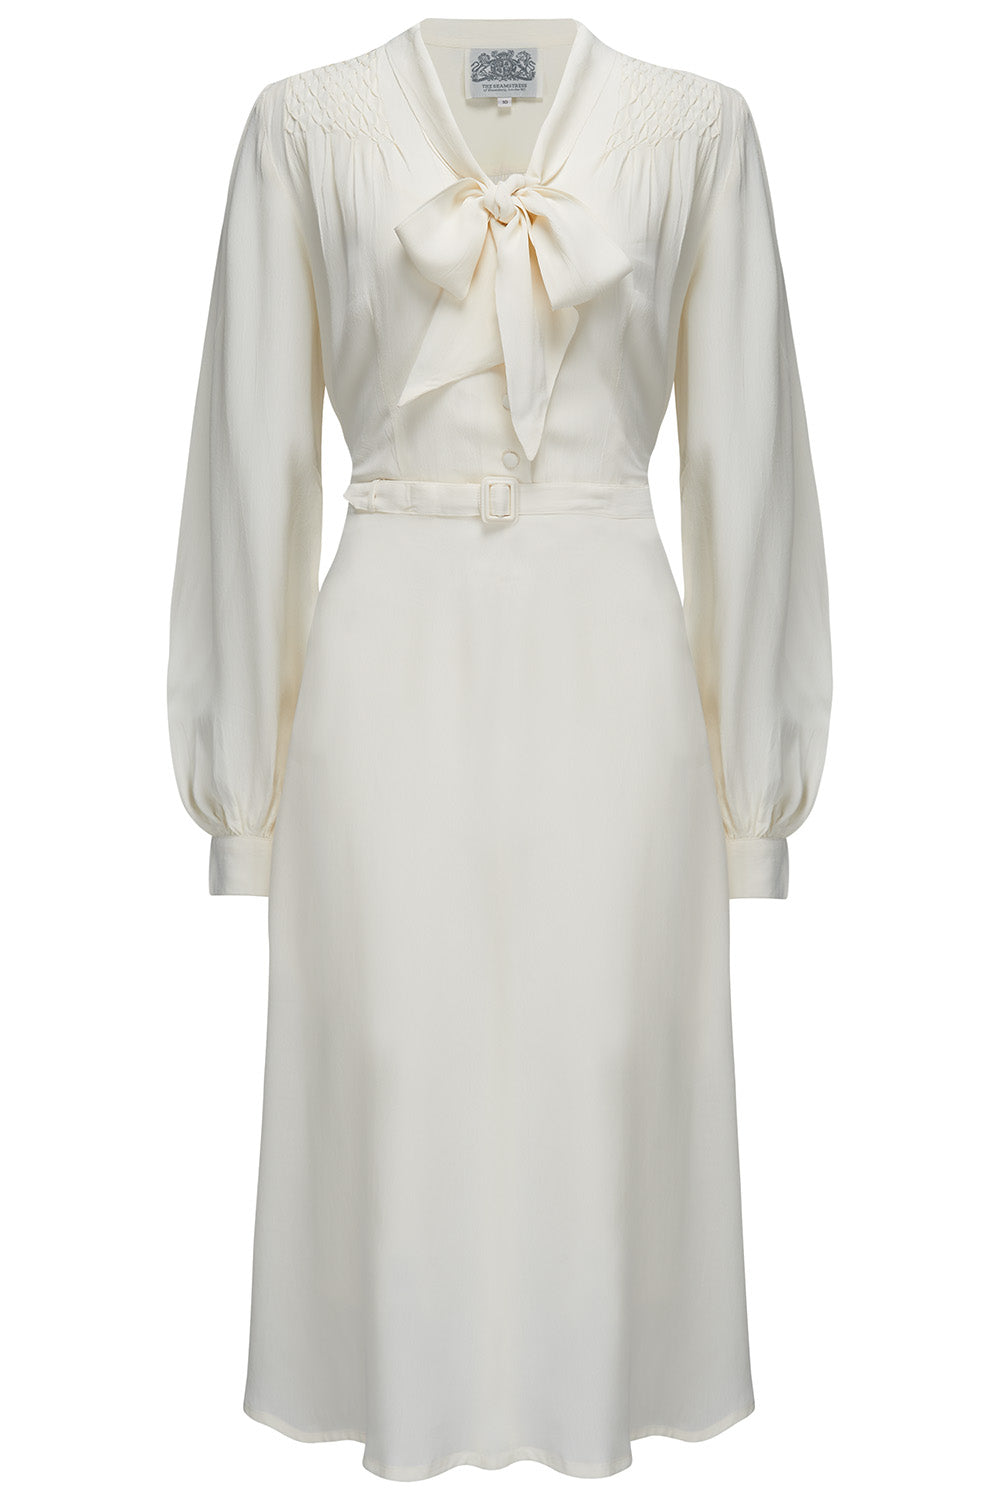 1940s Style Wedding Dresses | Classic Wedding Dresses Eva Dress in Cream  Classic 1940s Style Long Sleeve Dress with Pussy Bow Tie Neck £89.00 AT vintagedancer.com